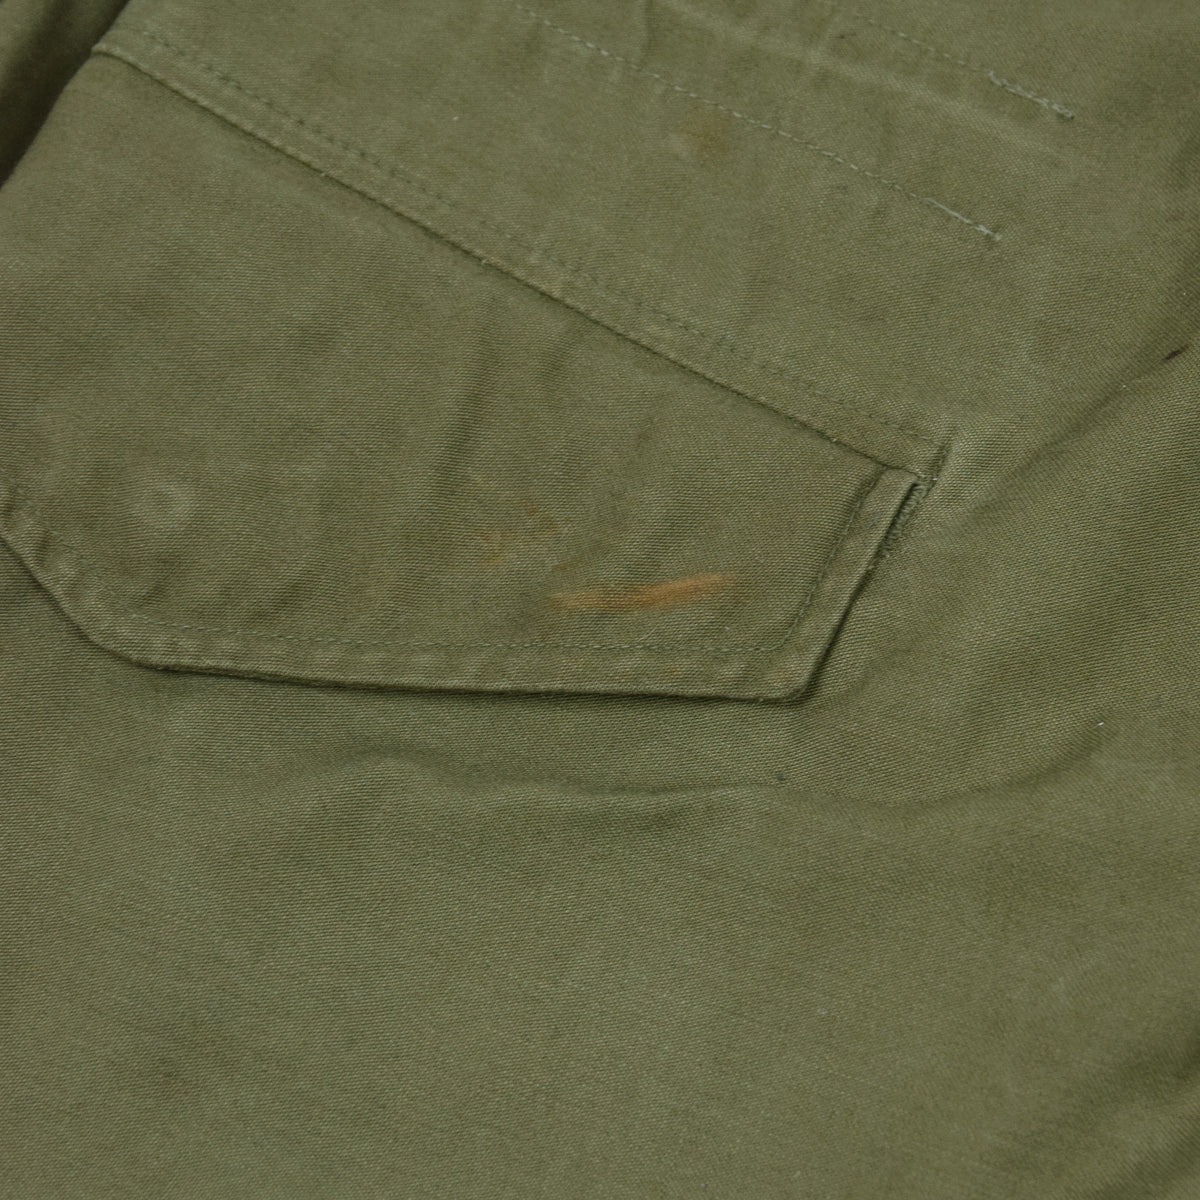 Vintage 60s Vietnam M-65 Man's Field Sateen 0G-107 Green US Army Coat S / M pocket marks